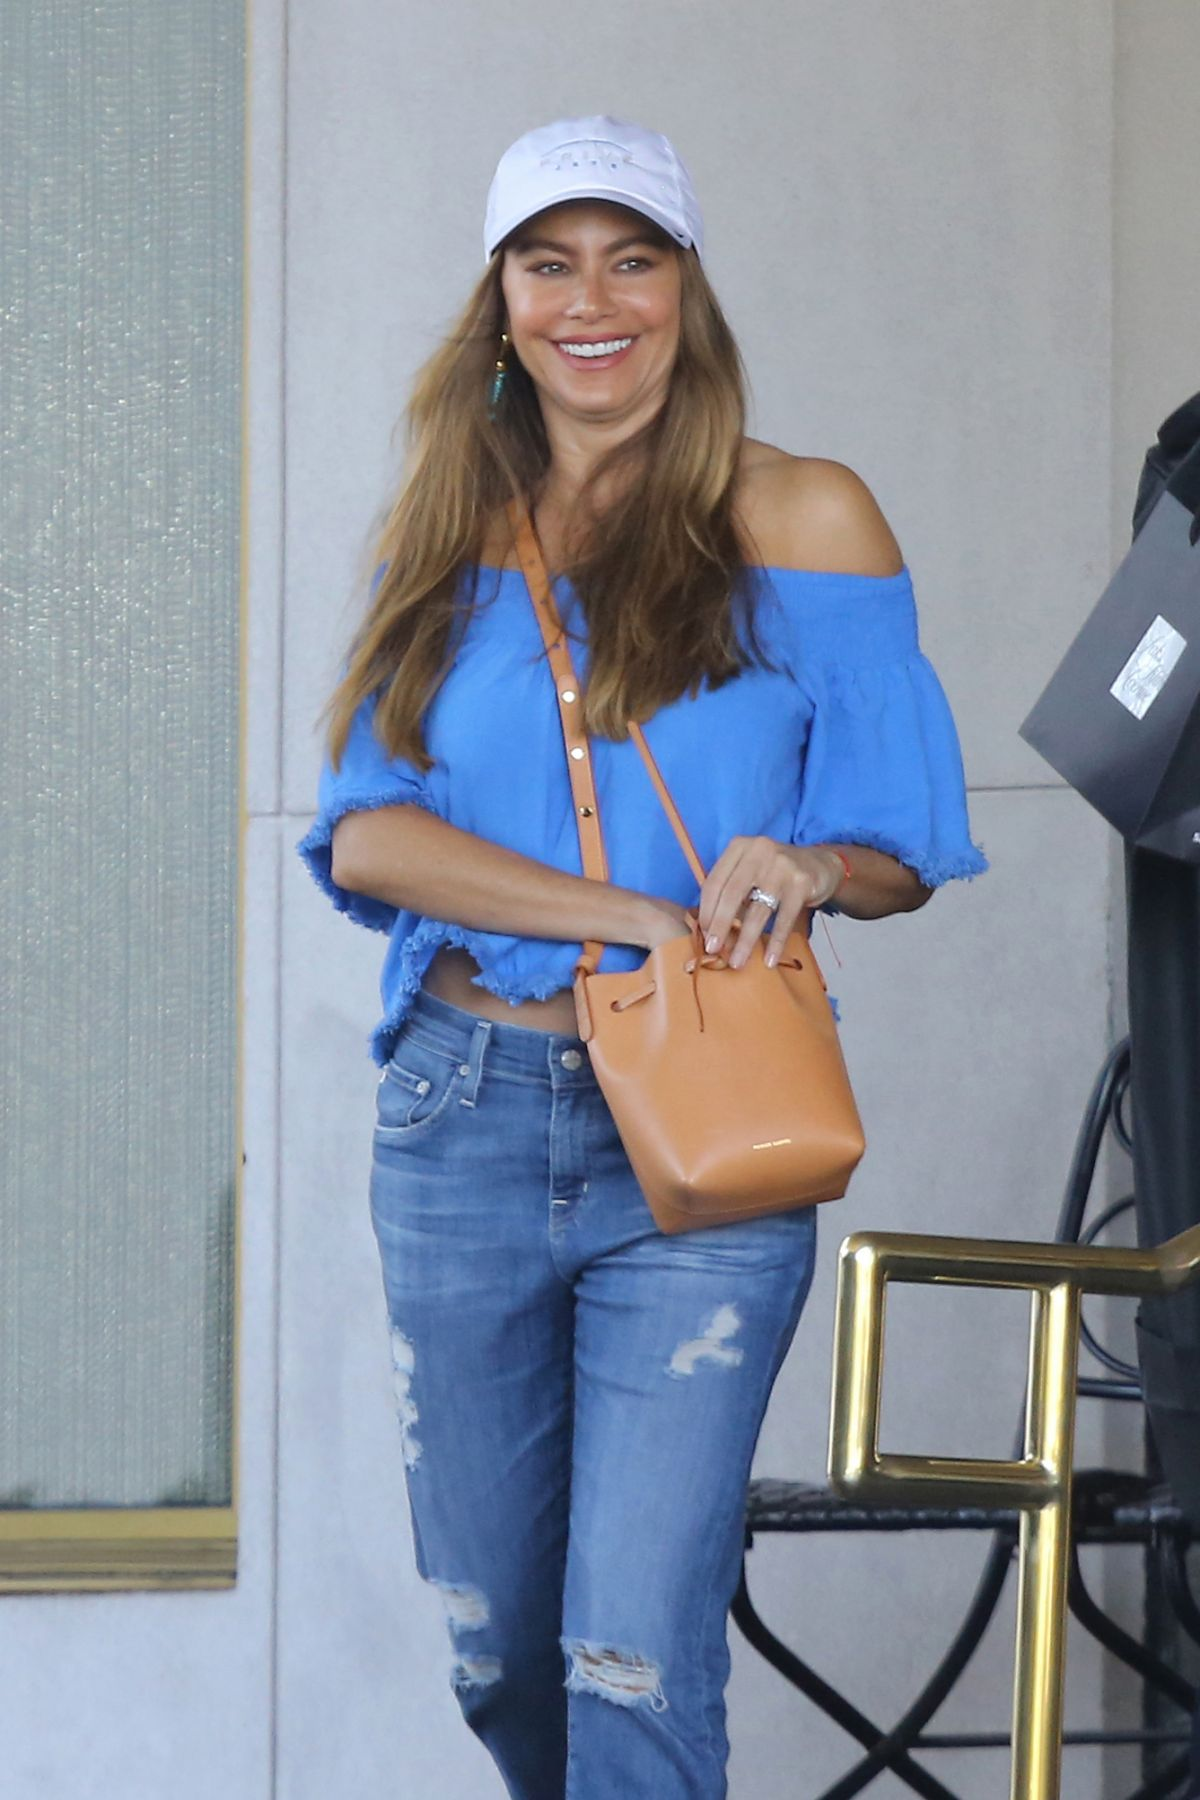 picture Sofia vergara at saks fifth avenue in beverly hills